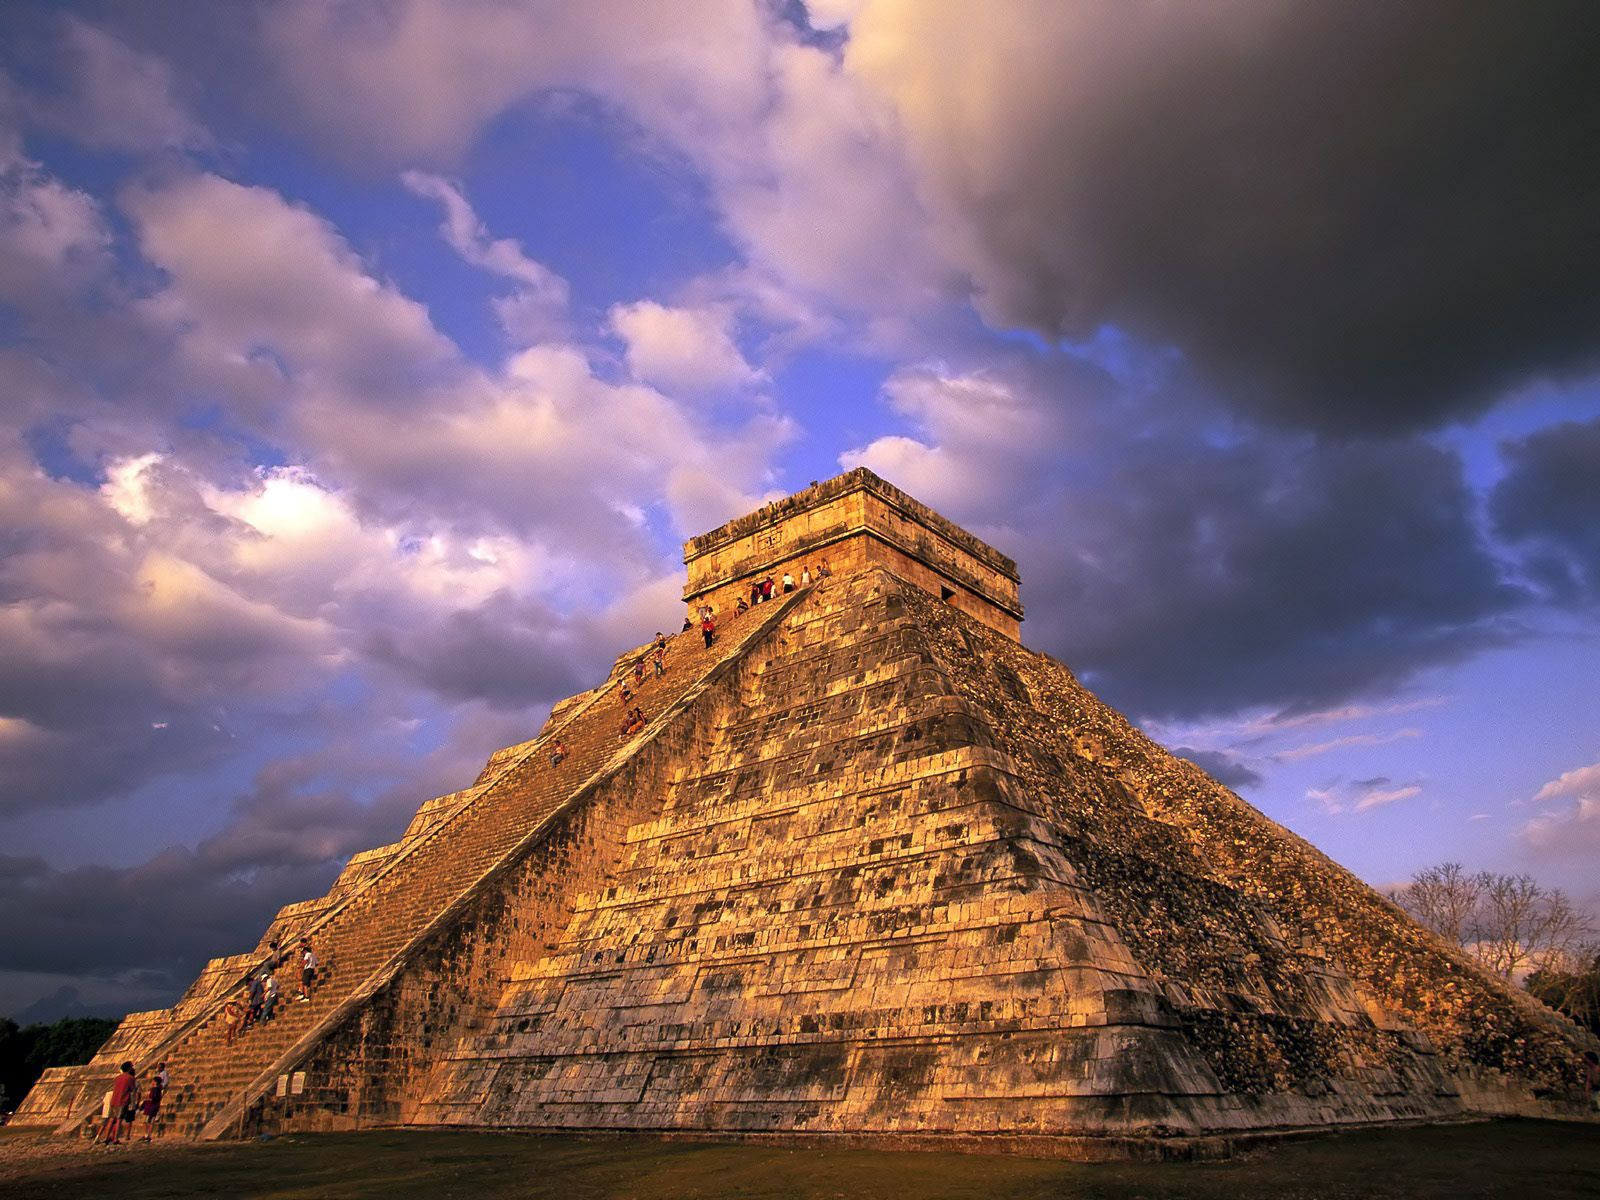 fda71b927023 Mayan pyramid, Mexico | Open your heart and take a look | Chichen ...